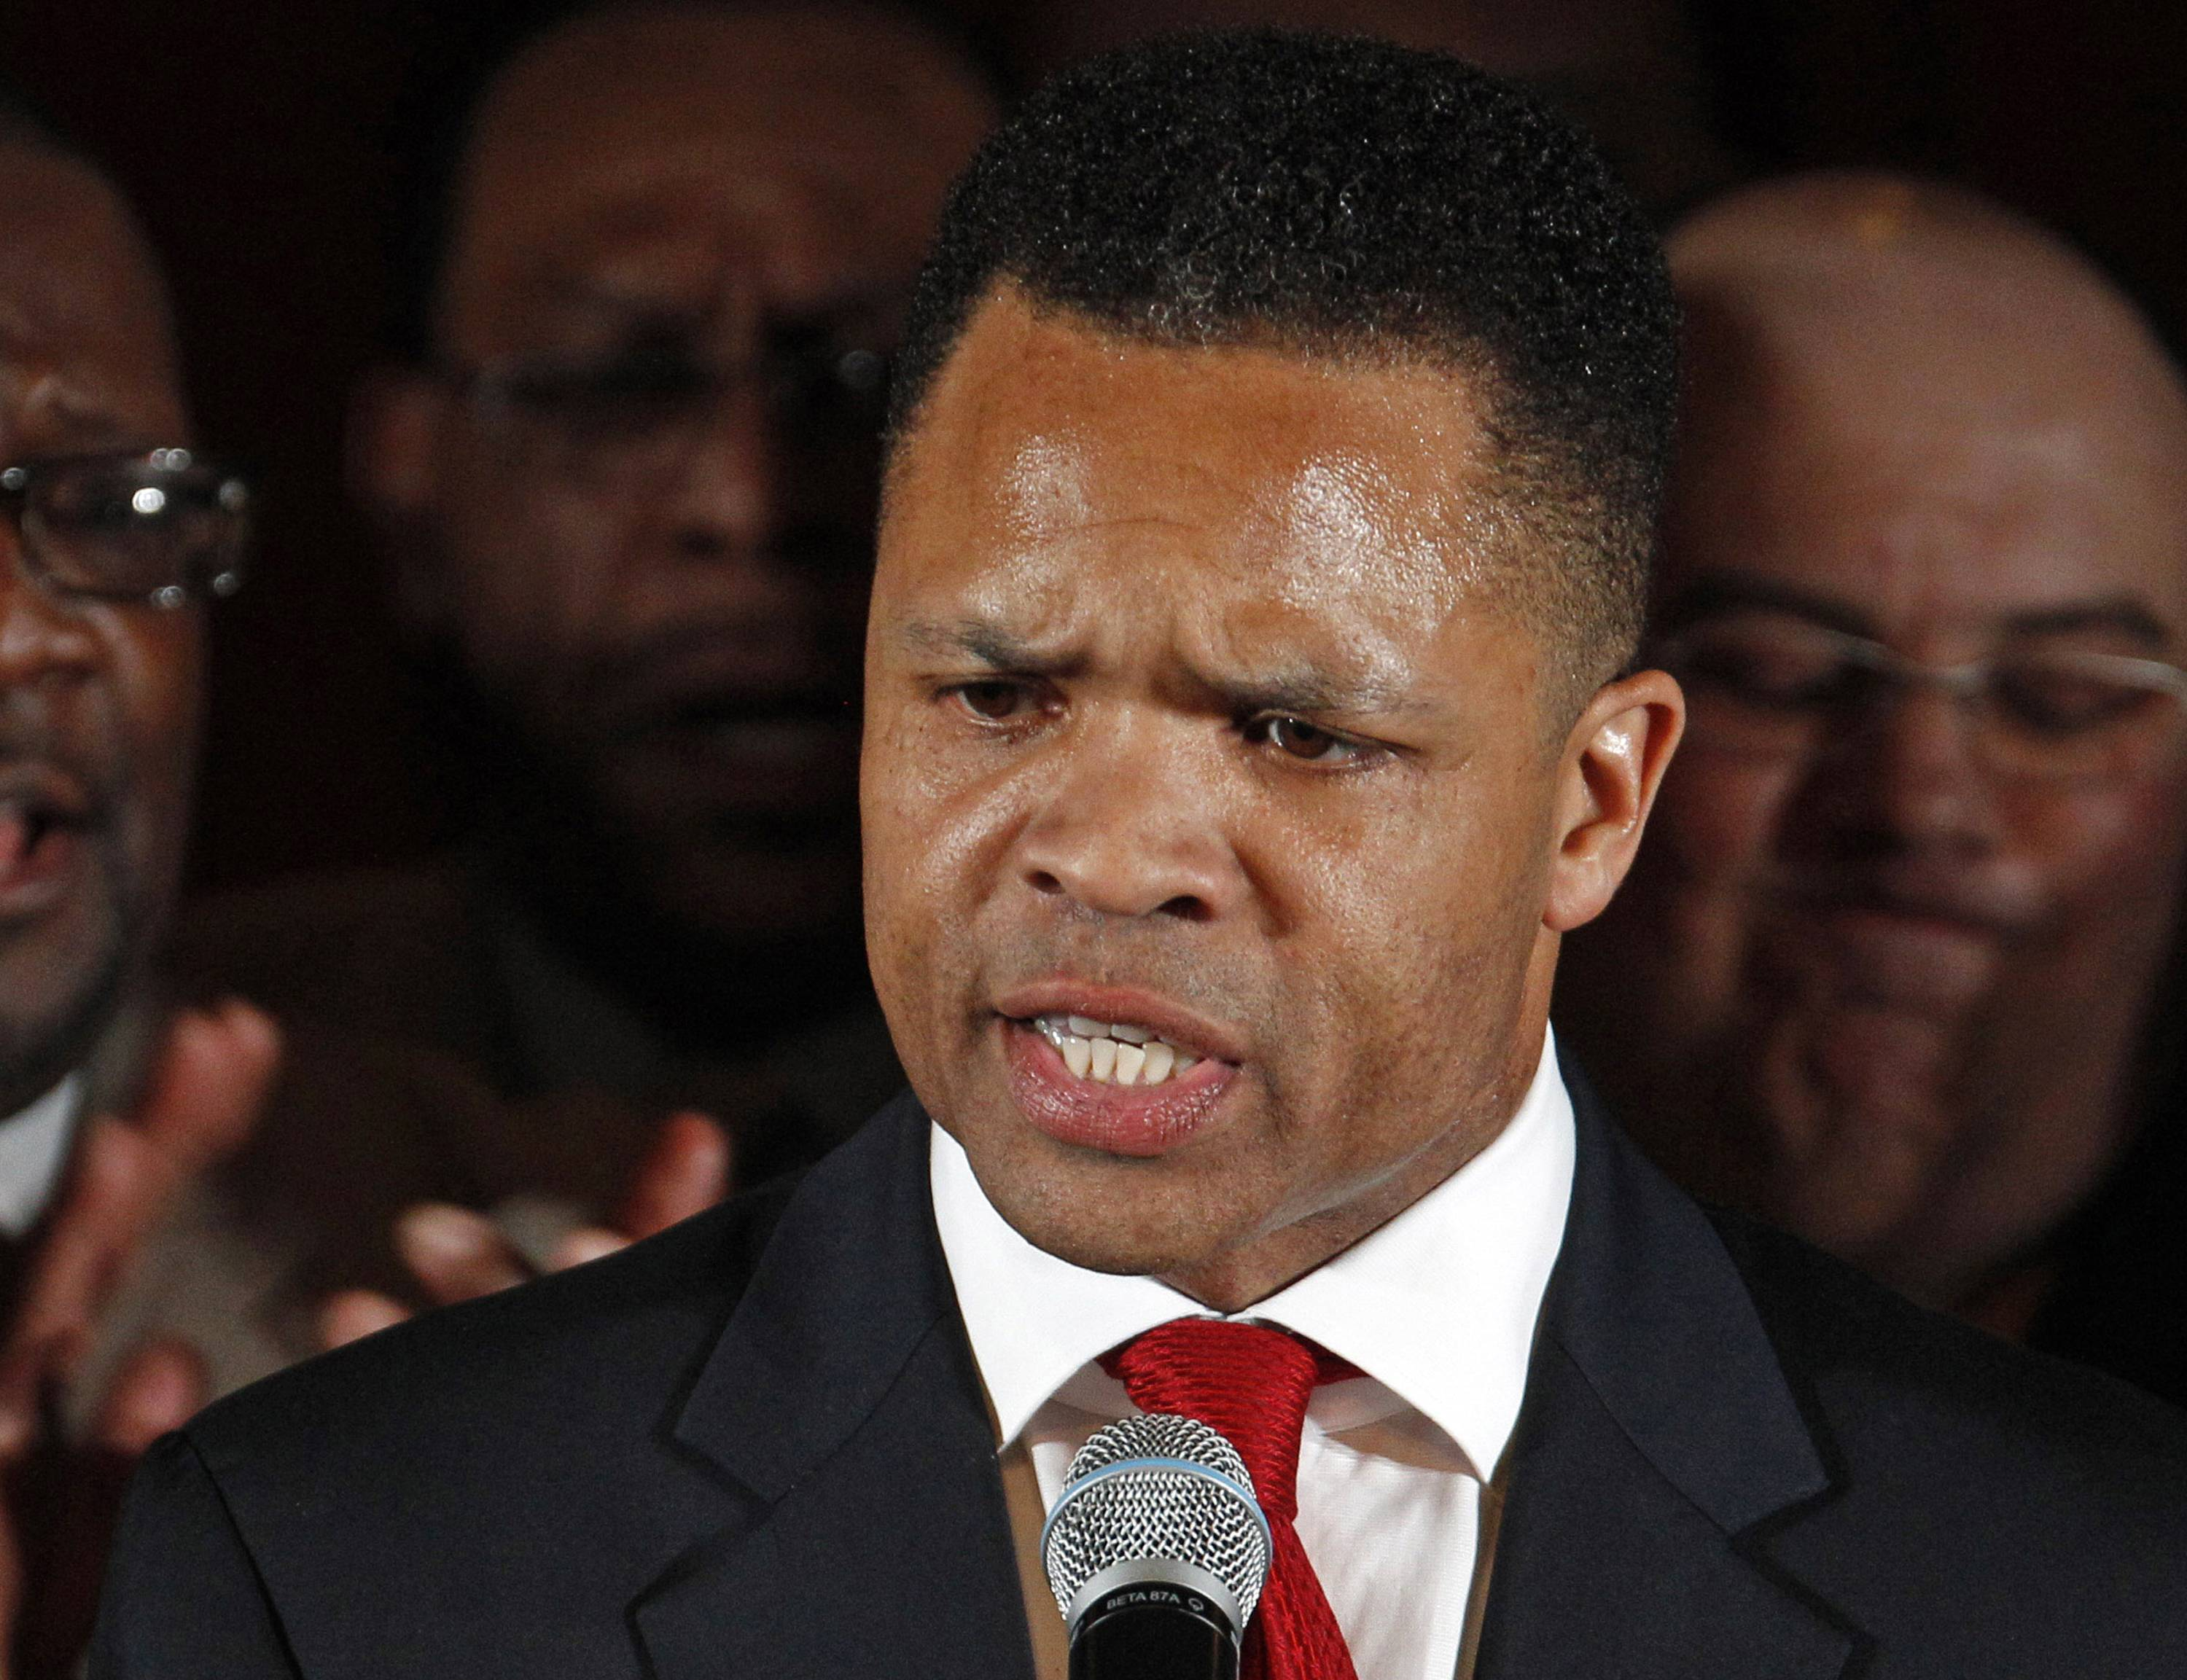 A spokesman for House Speaker John Boehner says he has received letter of resignation from Rep. Jesse Jackson Jr. Wednesday.